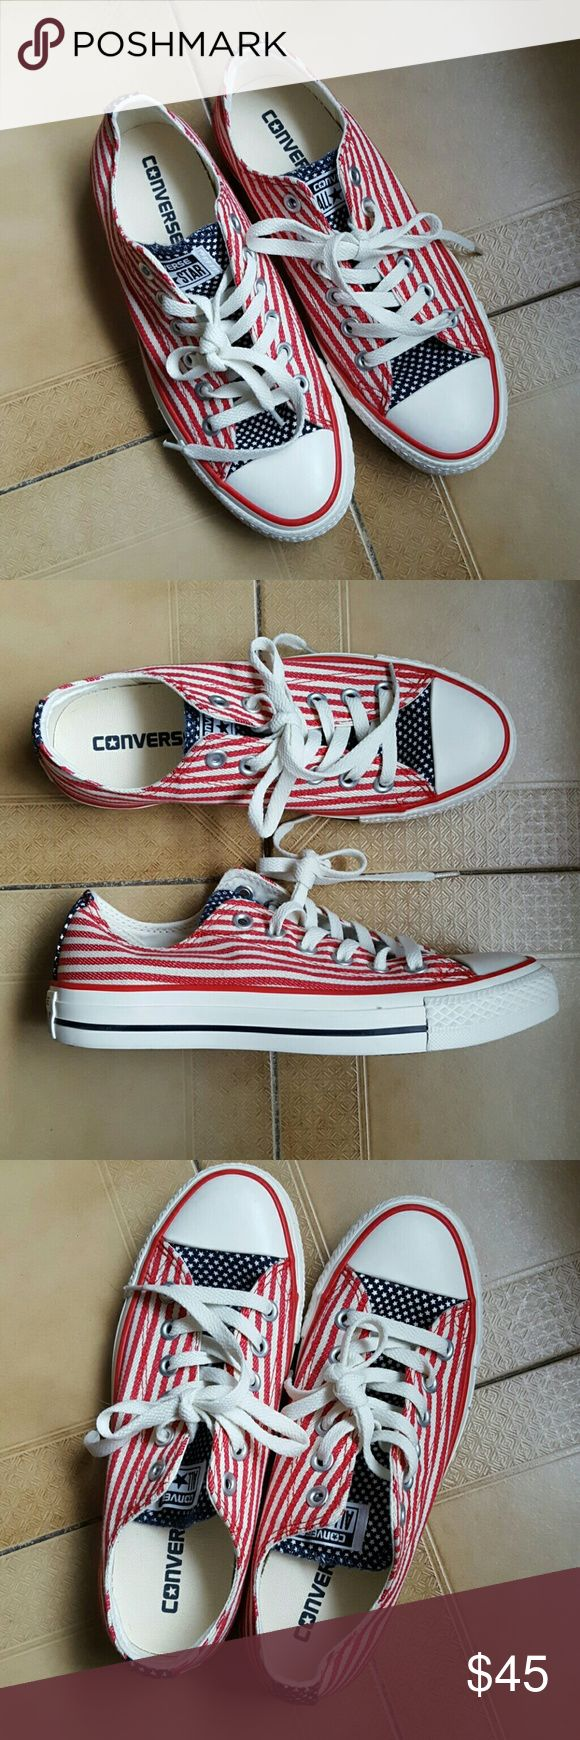 All Star Converse Unisex Sneakers Brand new. Women size 7 men size 5 Converse Shoes Sneakers